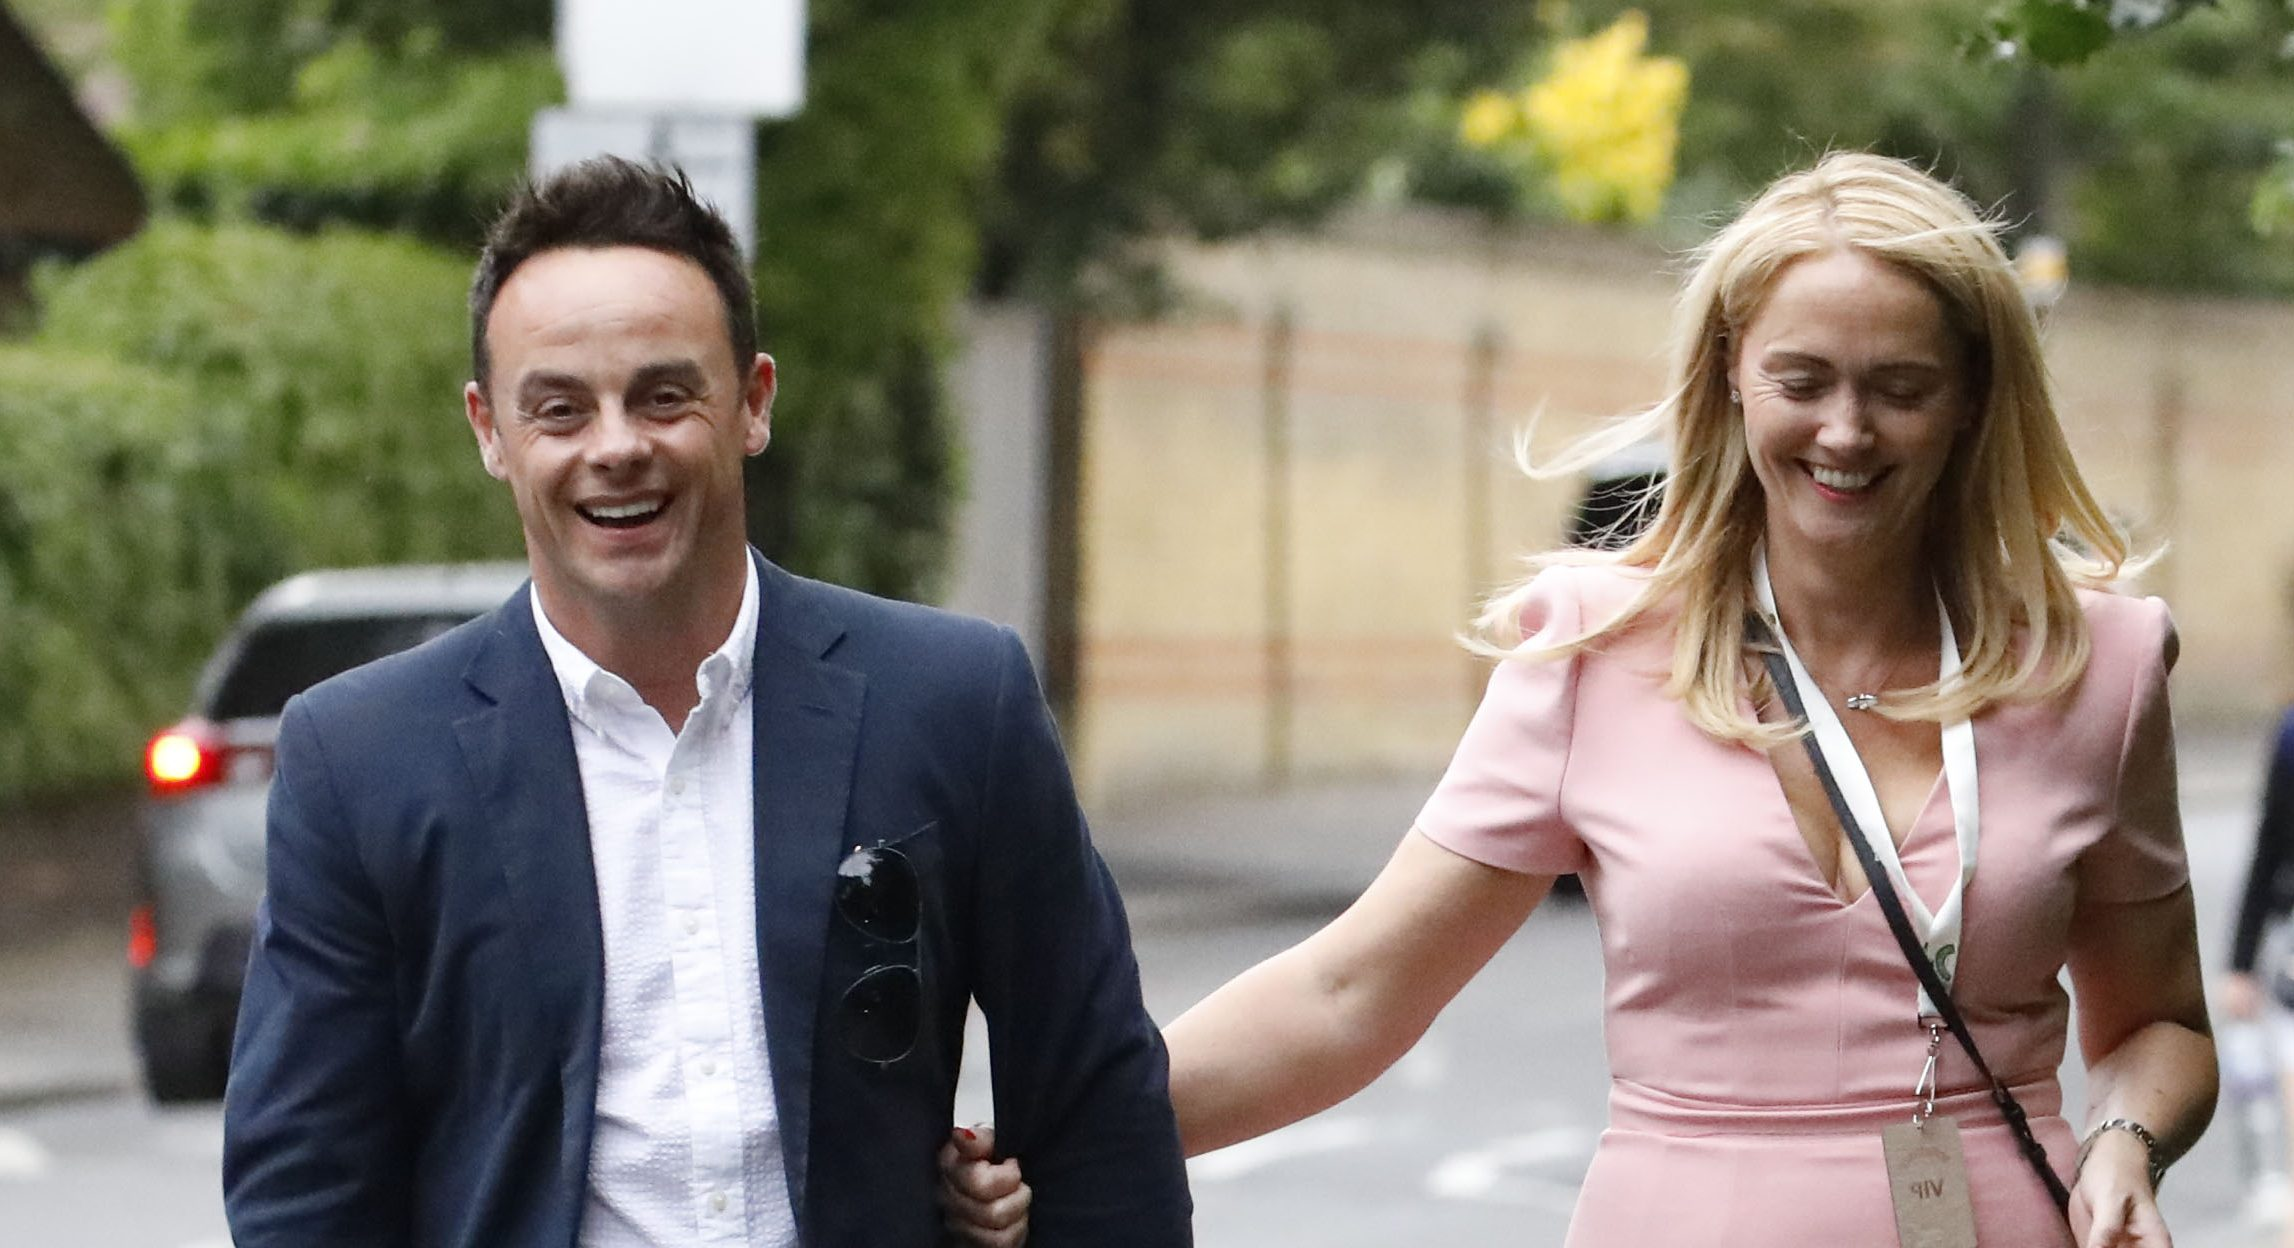 Ant McPartlin and Anne-Marie Corbett take huge step in their relationship